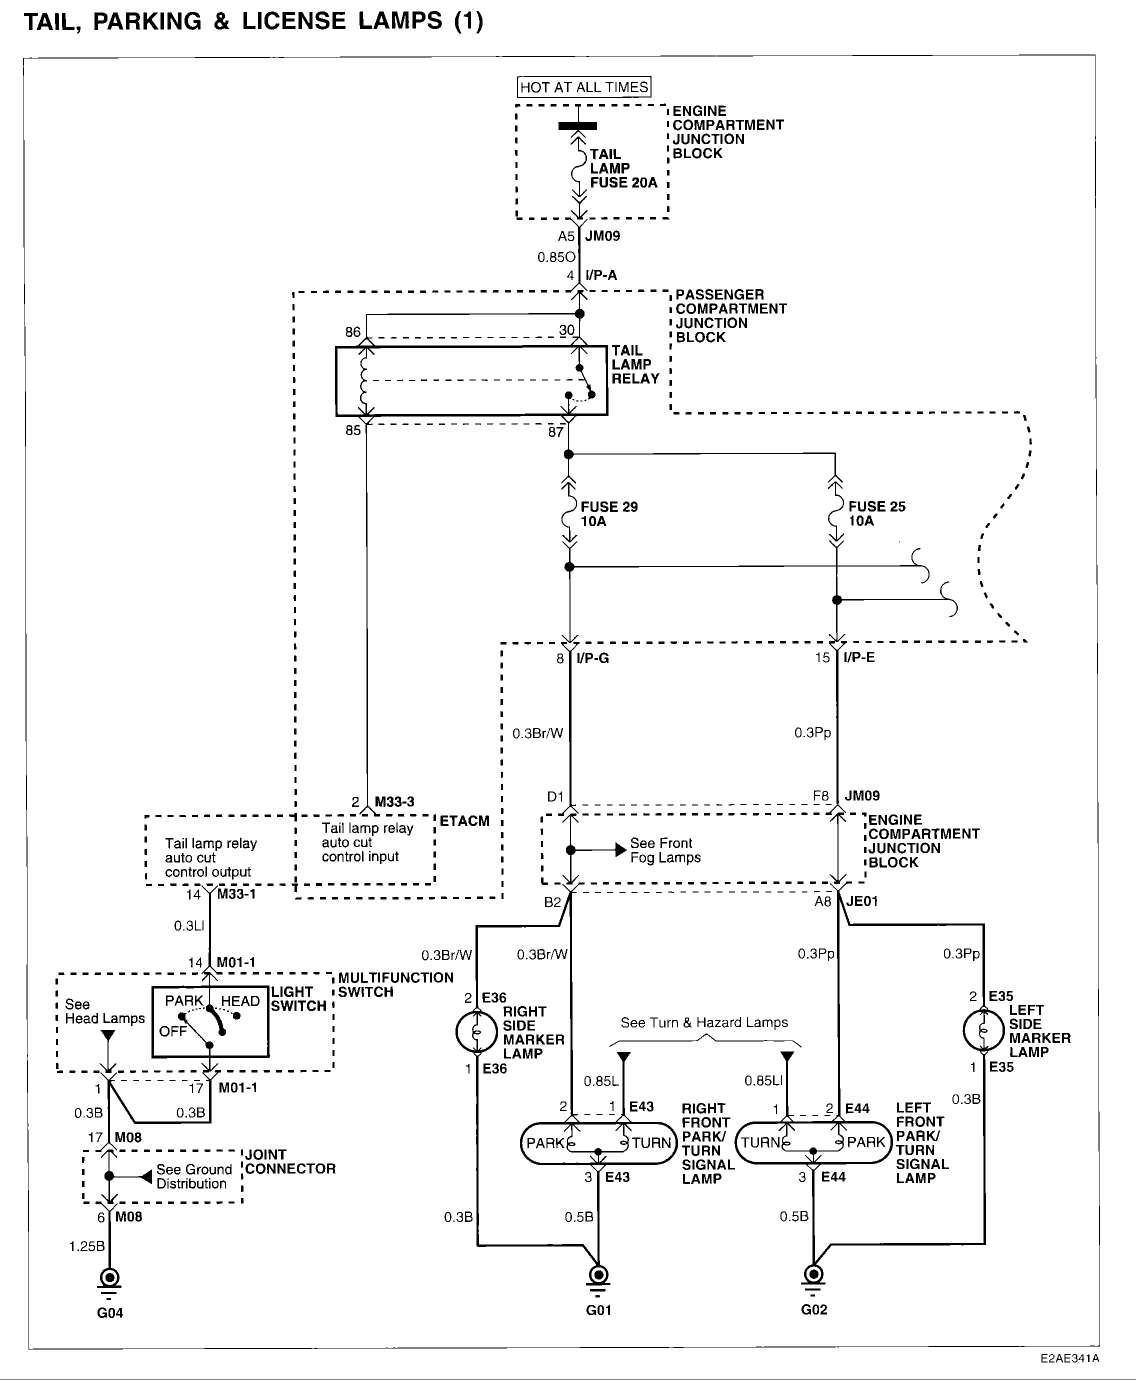 2006 hyundai sonata radio wiring diagram Collection-2009 Hyundai sonata Fuse Box Diagram Inspirational sophisticated Hyundai sonata Wiring Diagram Image 12-o